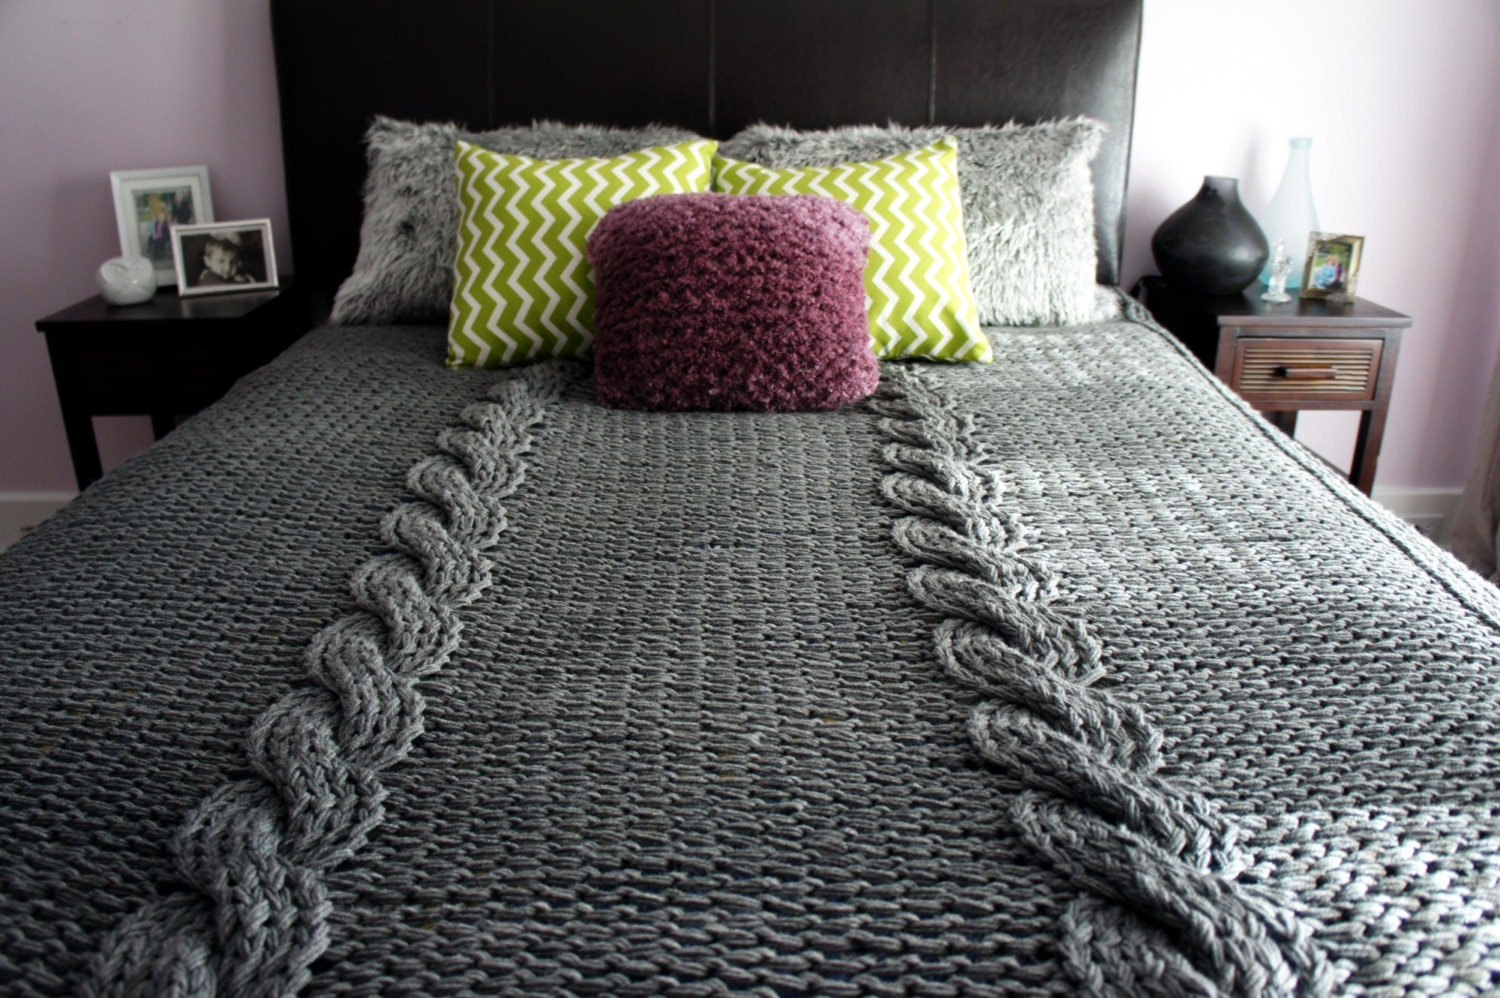 Knitting Patterns For Bed Throws : Knit Throw Knit Blanket Cable Blanket Bed Cover Home